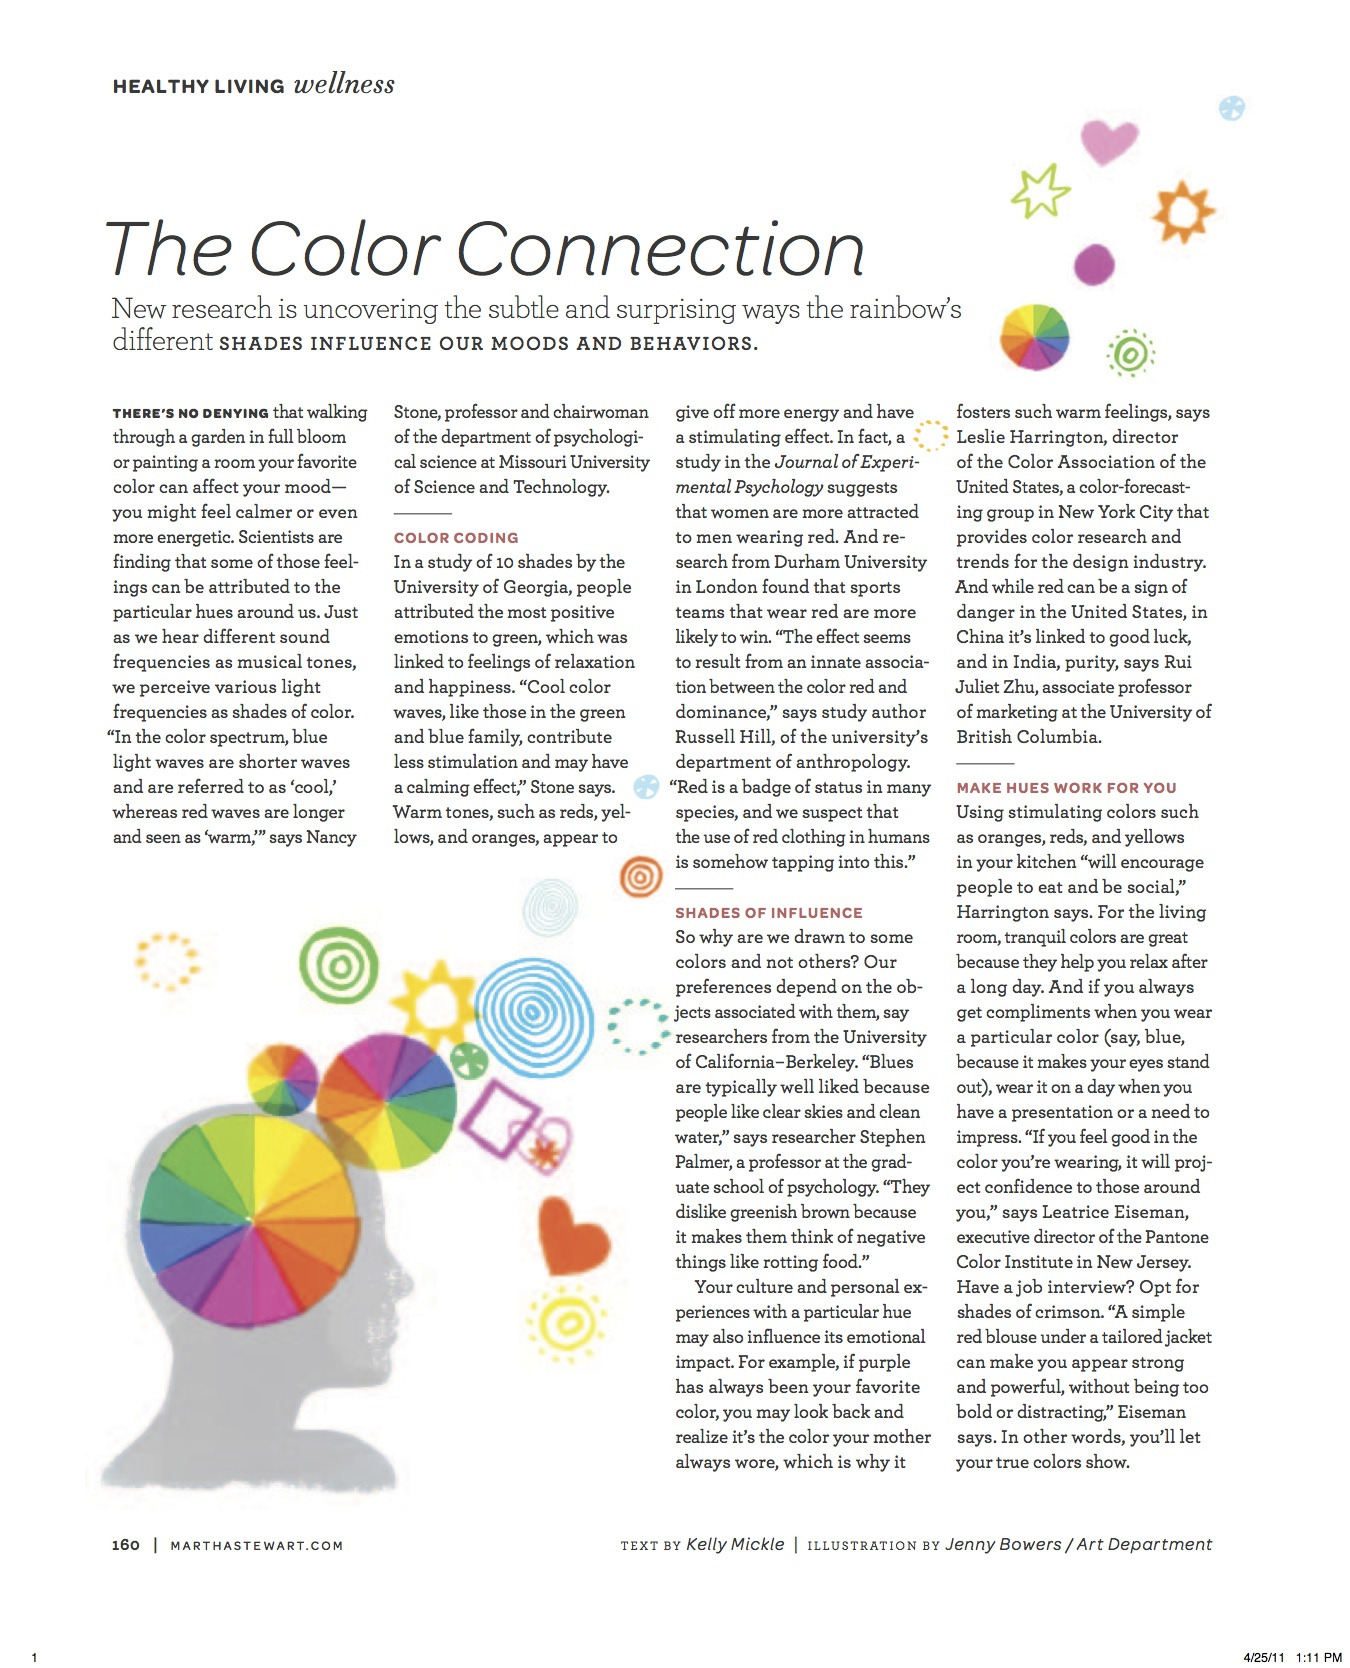 ColorConnection.jpg